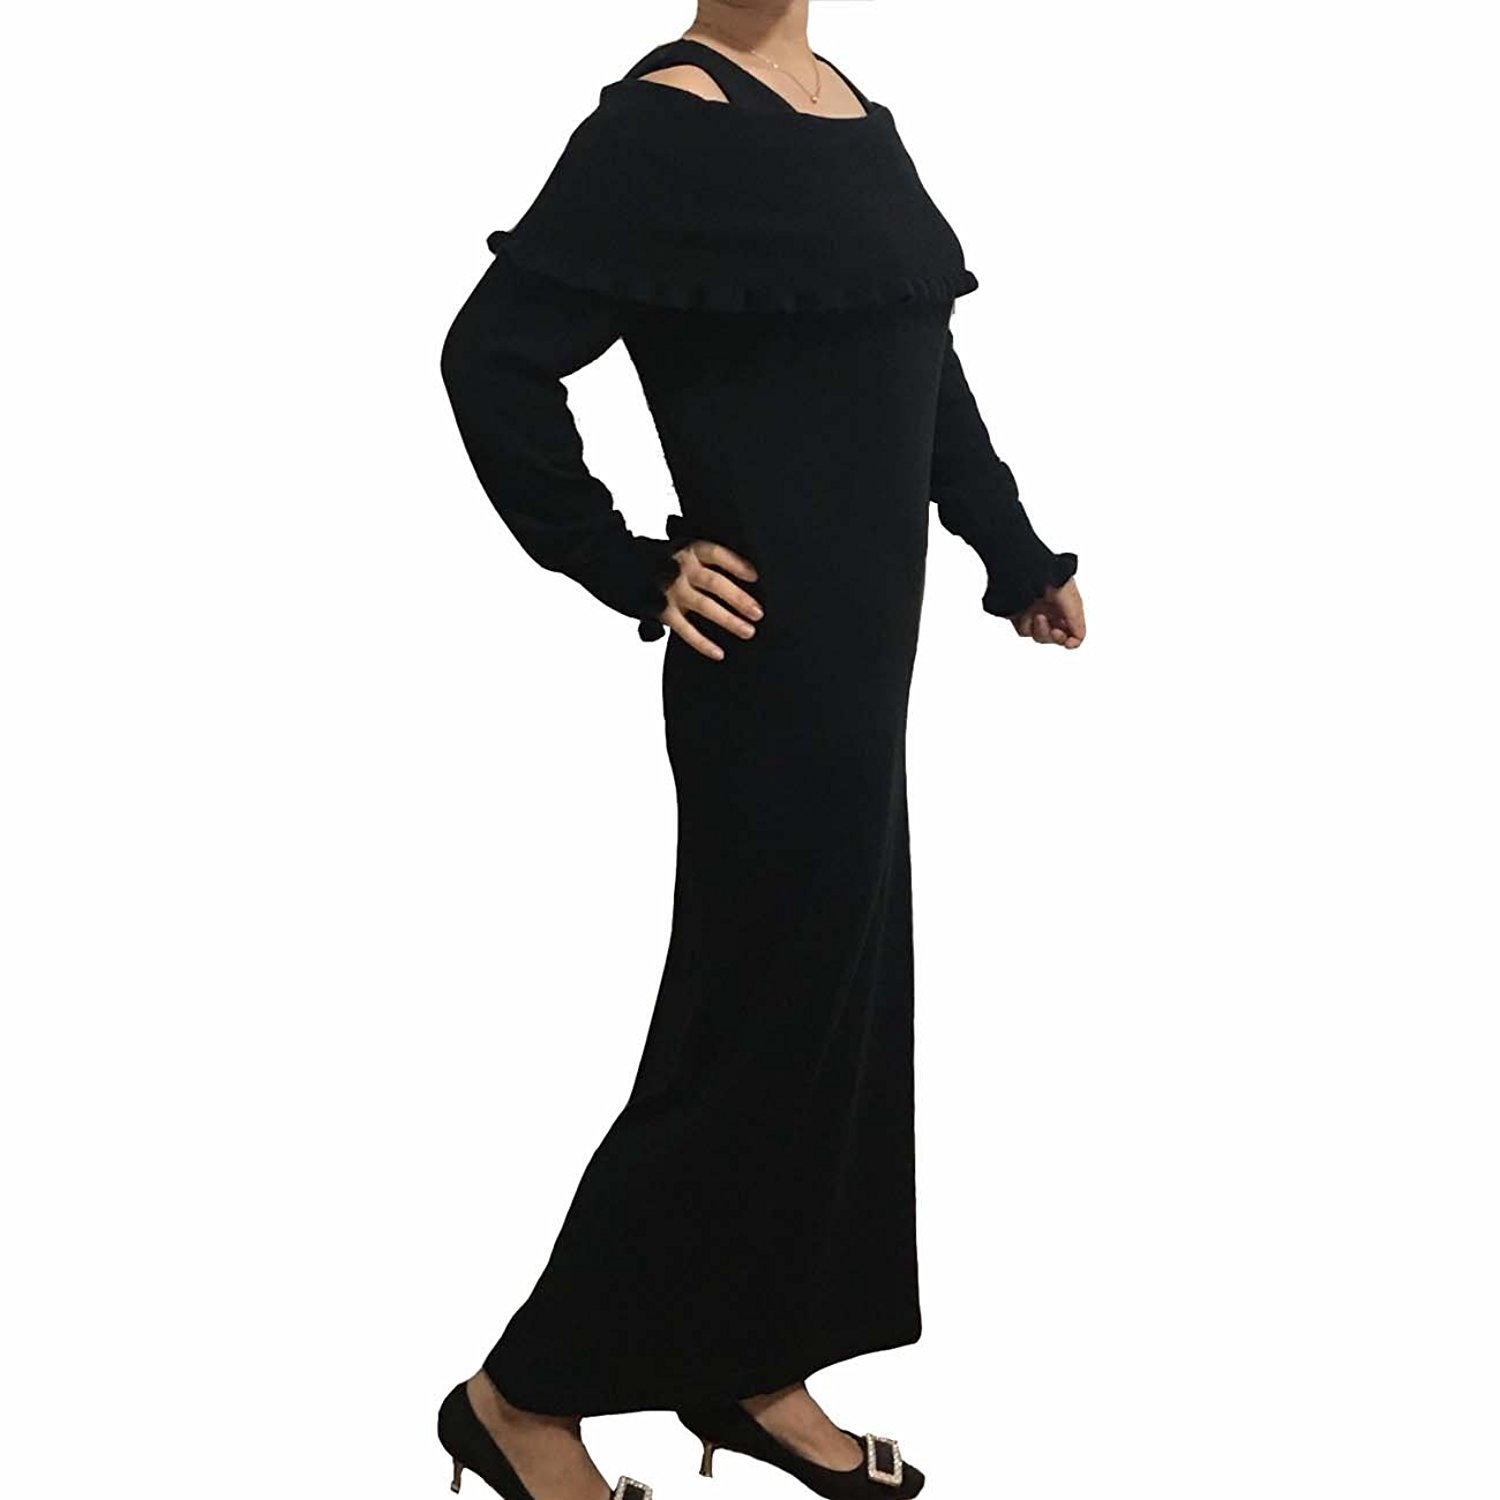 76cfe986e4f sweater Dress Women Winter Spring Cashmere Blending Knitted Sexy off  shoulder dr